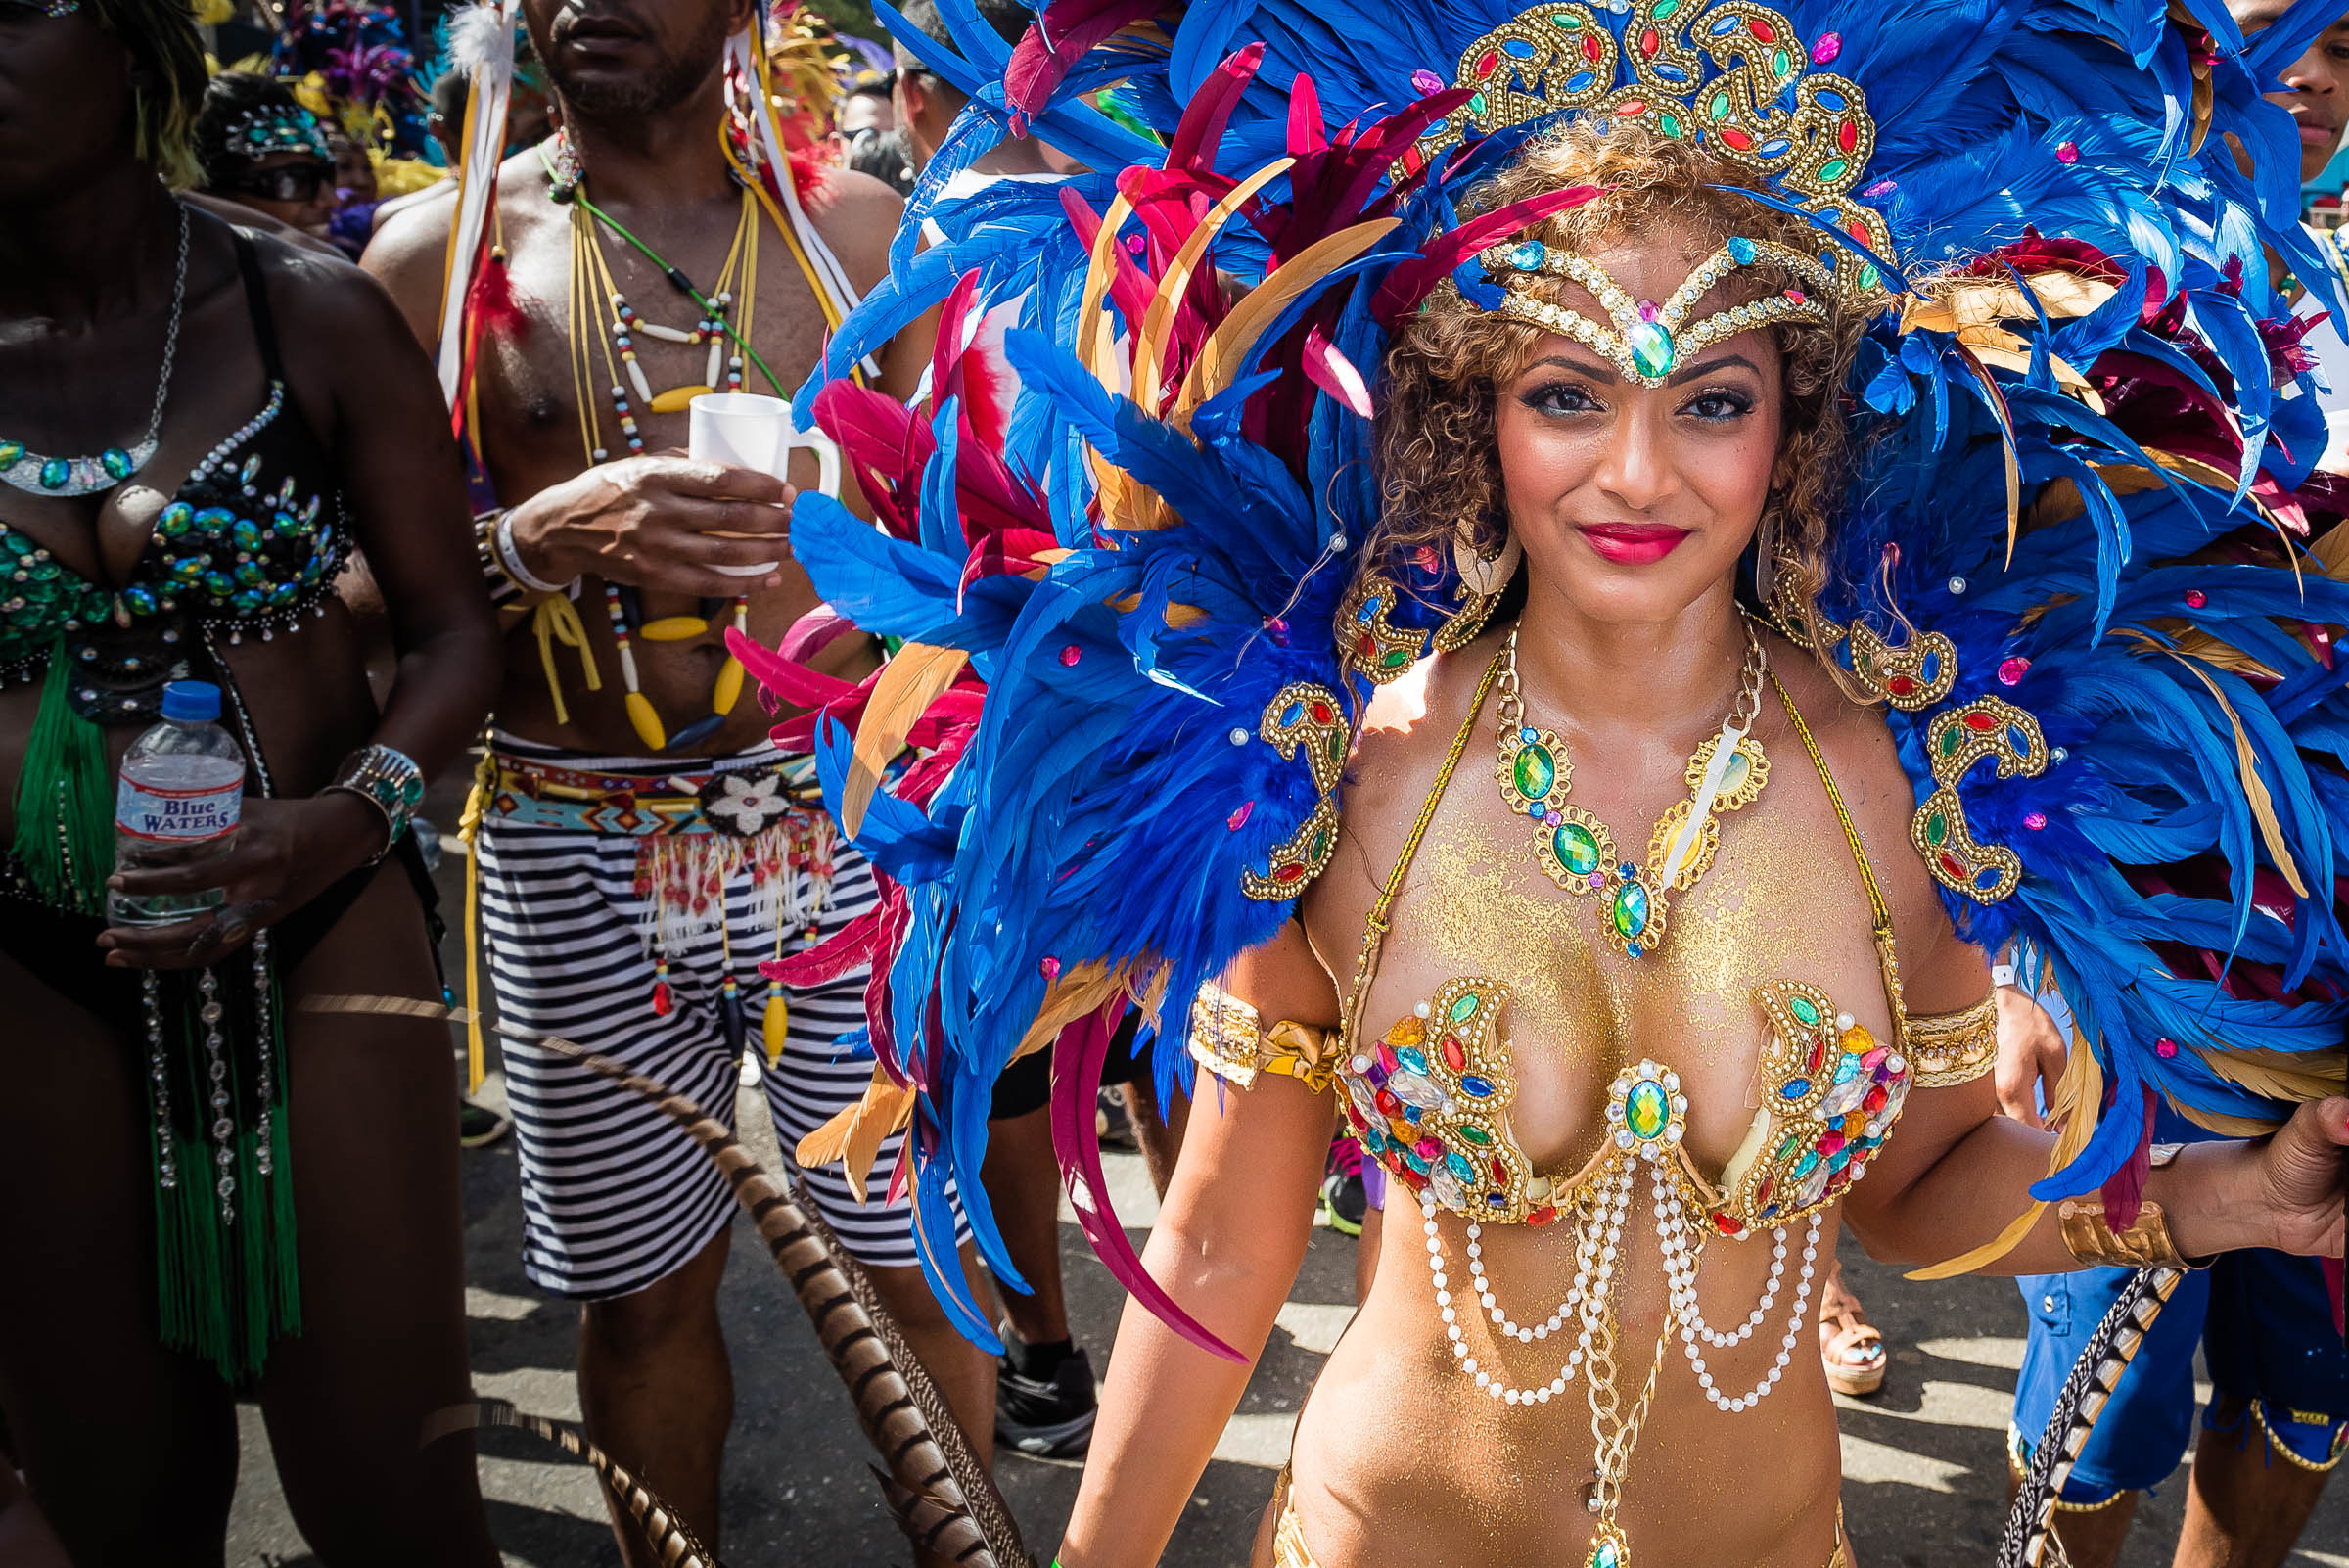 Cosign travel how carnival in trinidad and tobago fed my soul cosign travel how carnival in trinidad and tobago fed my soul malvernweather Gallery